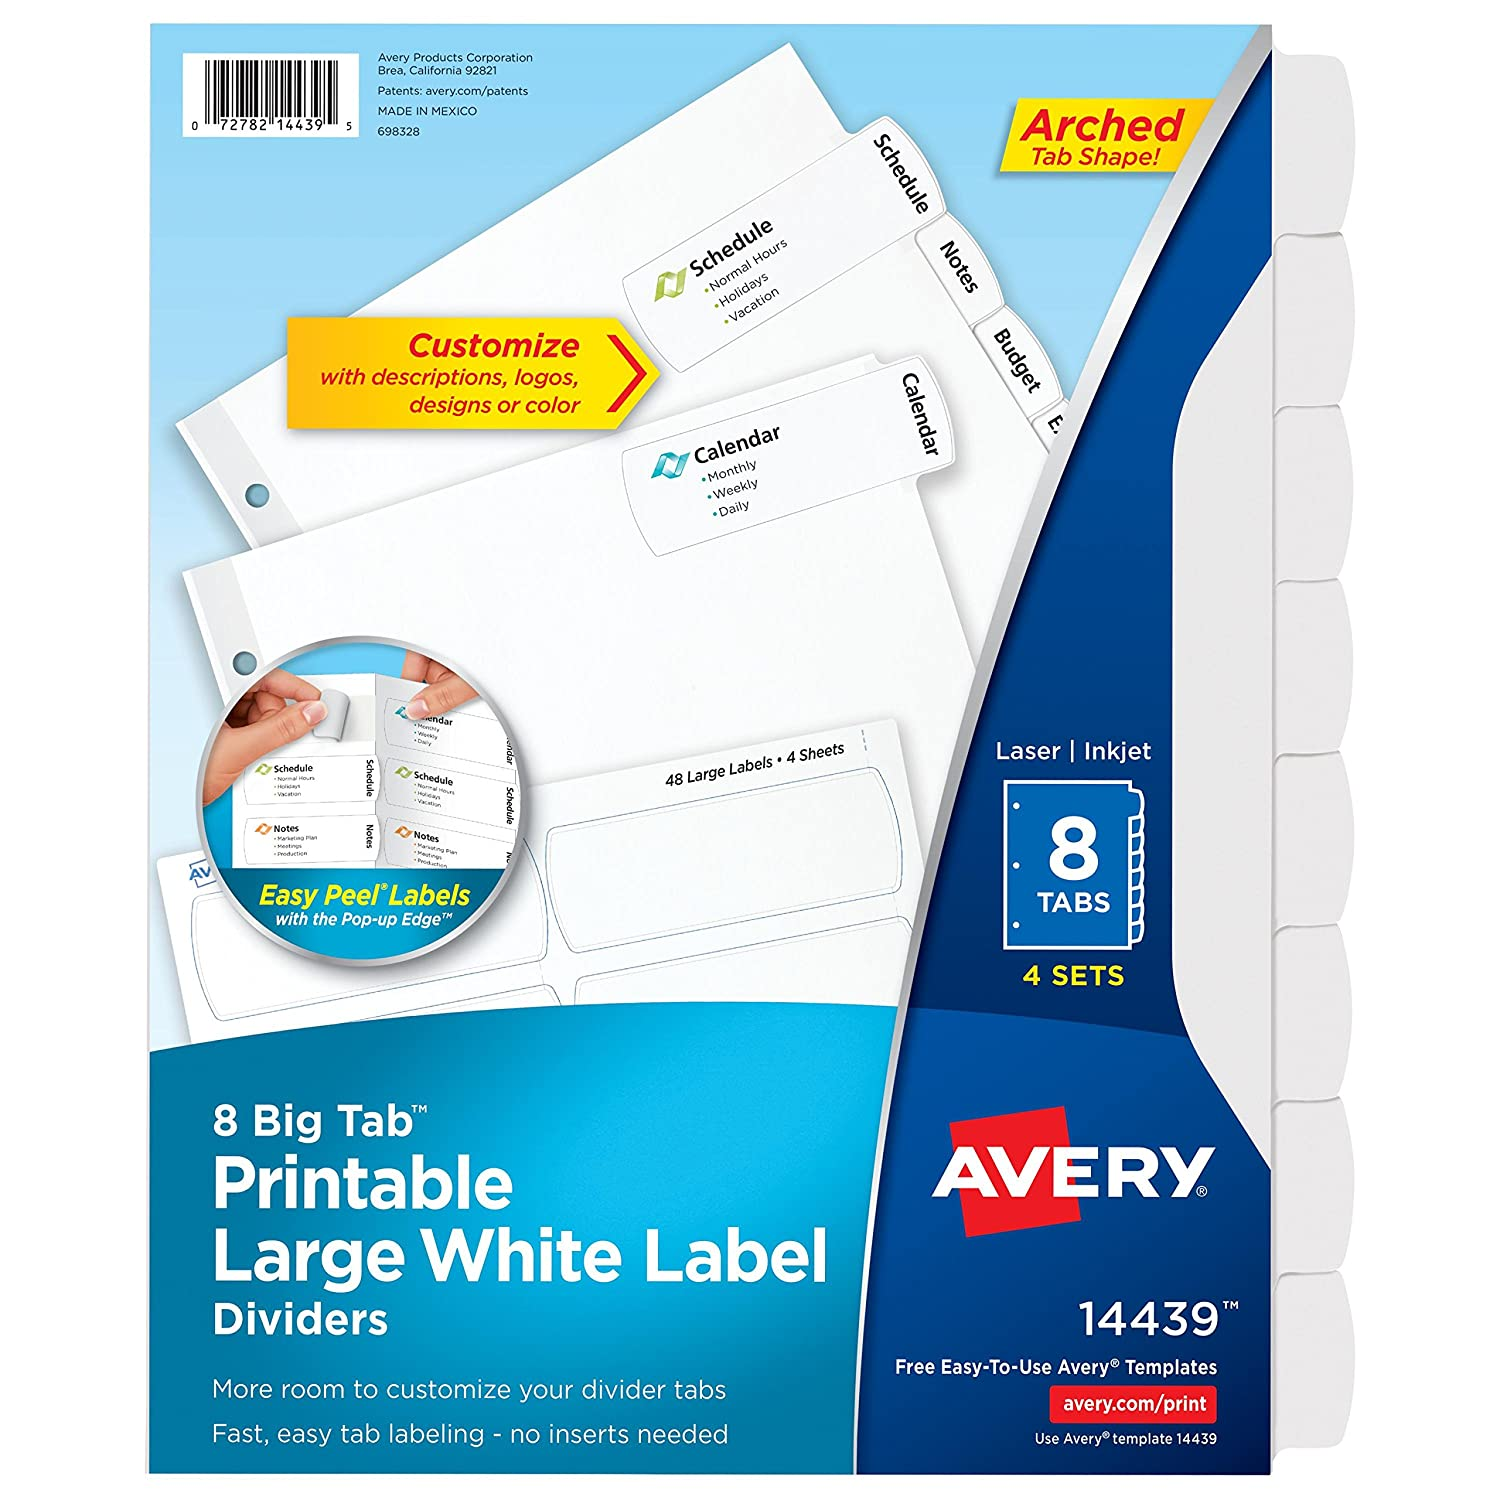 Avery Big Tab Printable Large White Label Dividers with Easy Peel, 8 Tabs, 20 Sets (14441) Avery Products Corporation